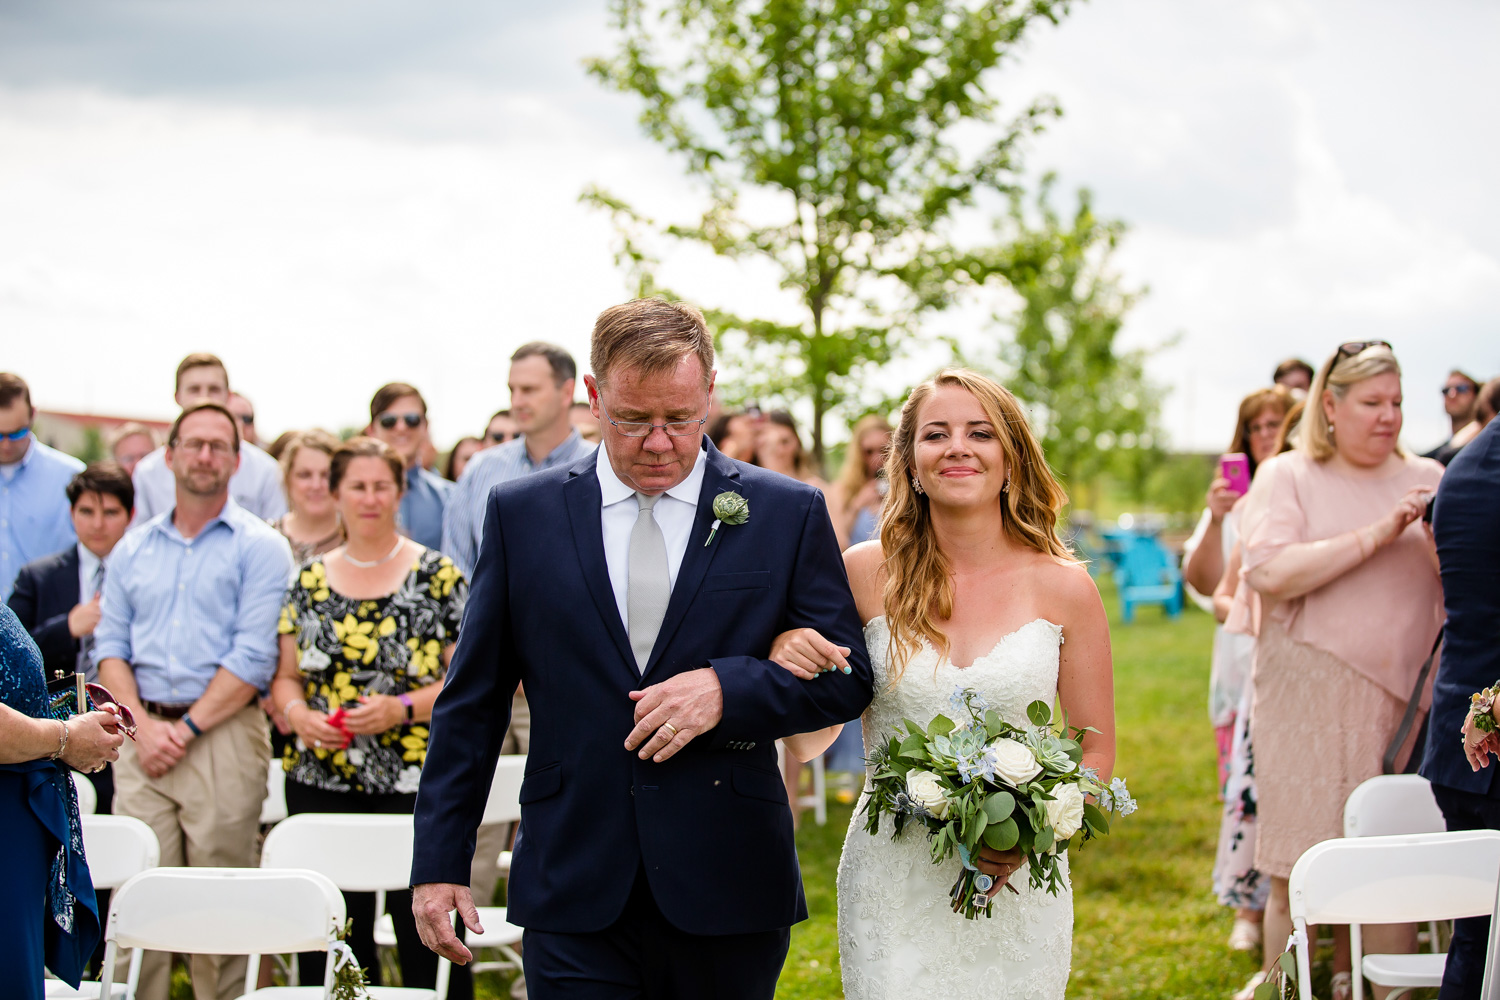 Father walks bride down aisle at outdoor wedding ceremony